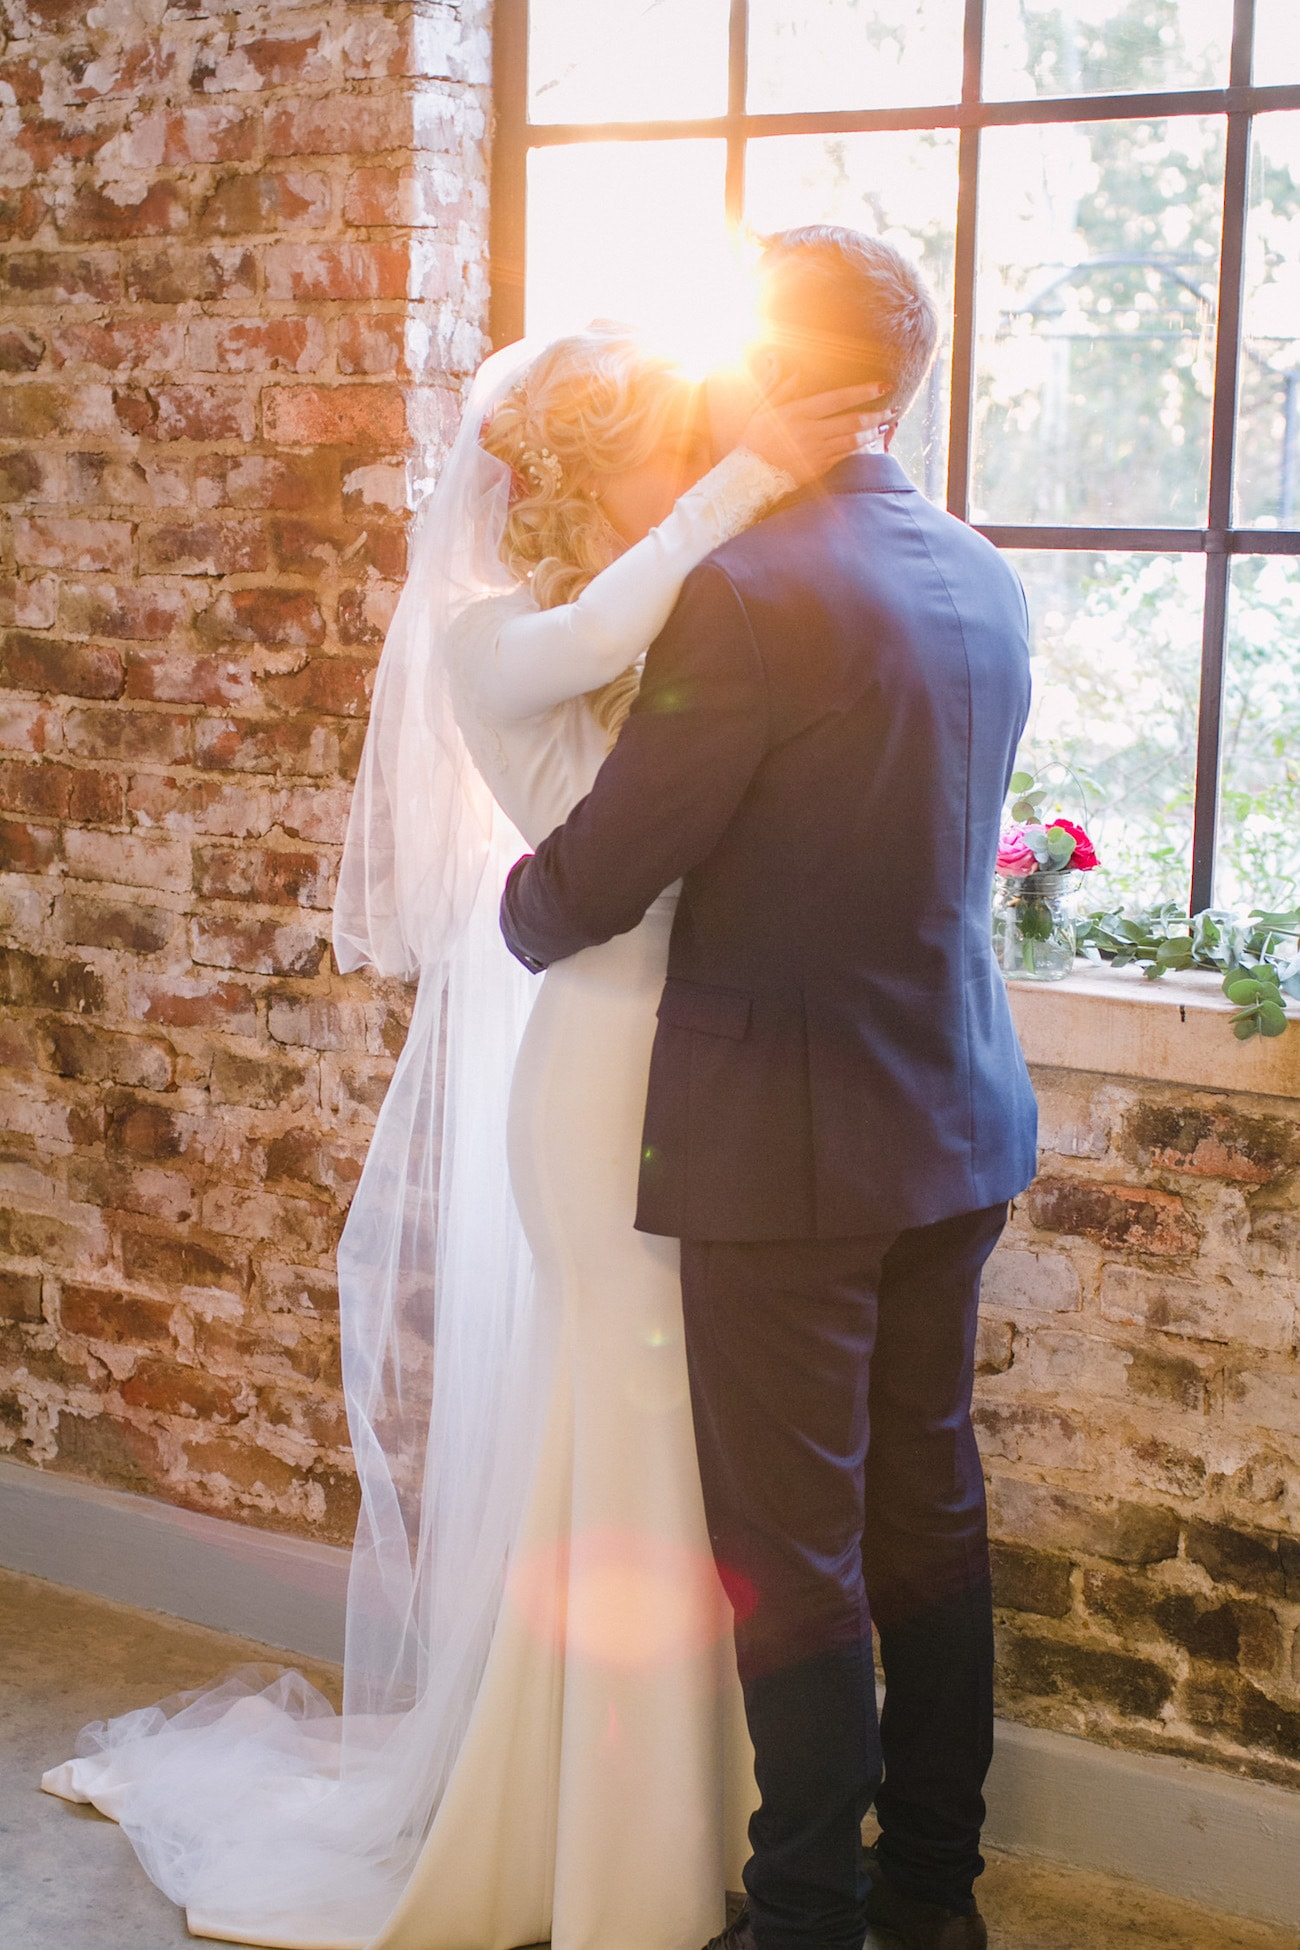 Bride and Groom | Joyous Jewel Tone Winter Wedding | Credit: Dust and Dreams Photography